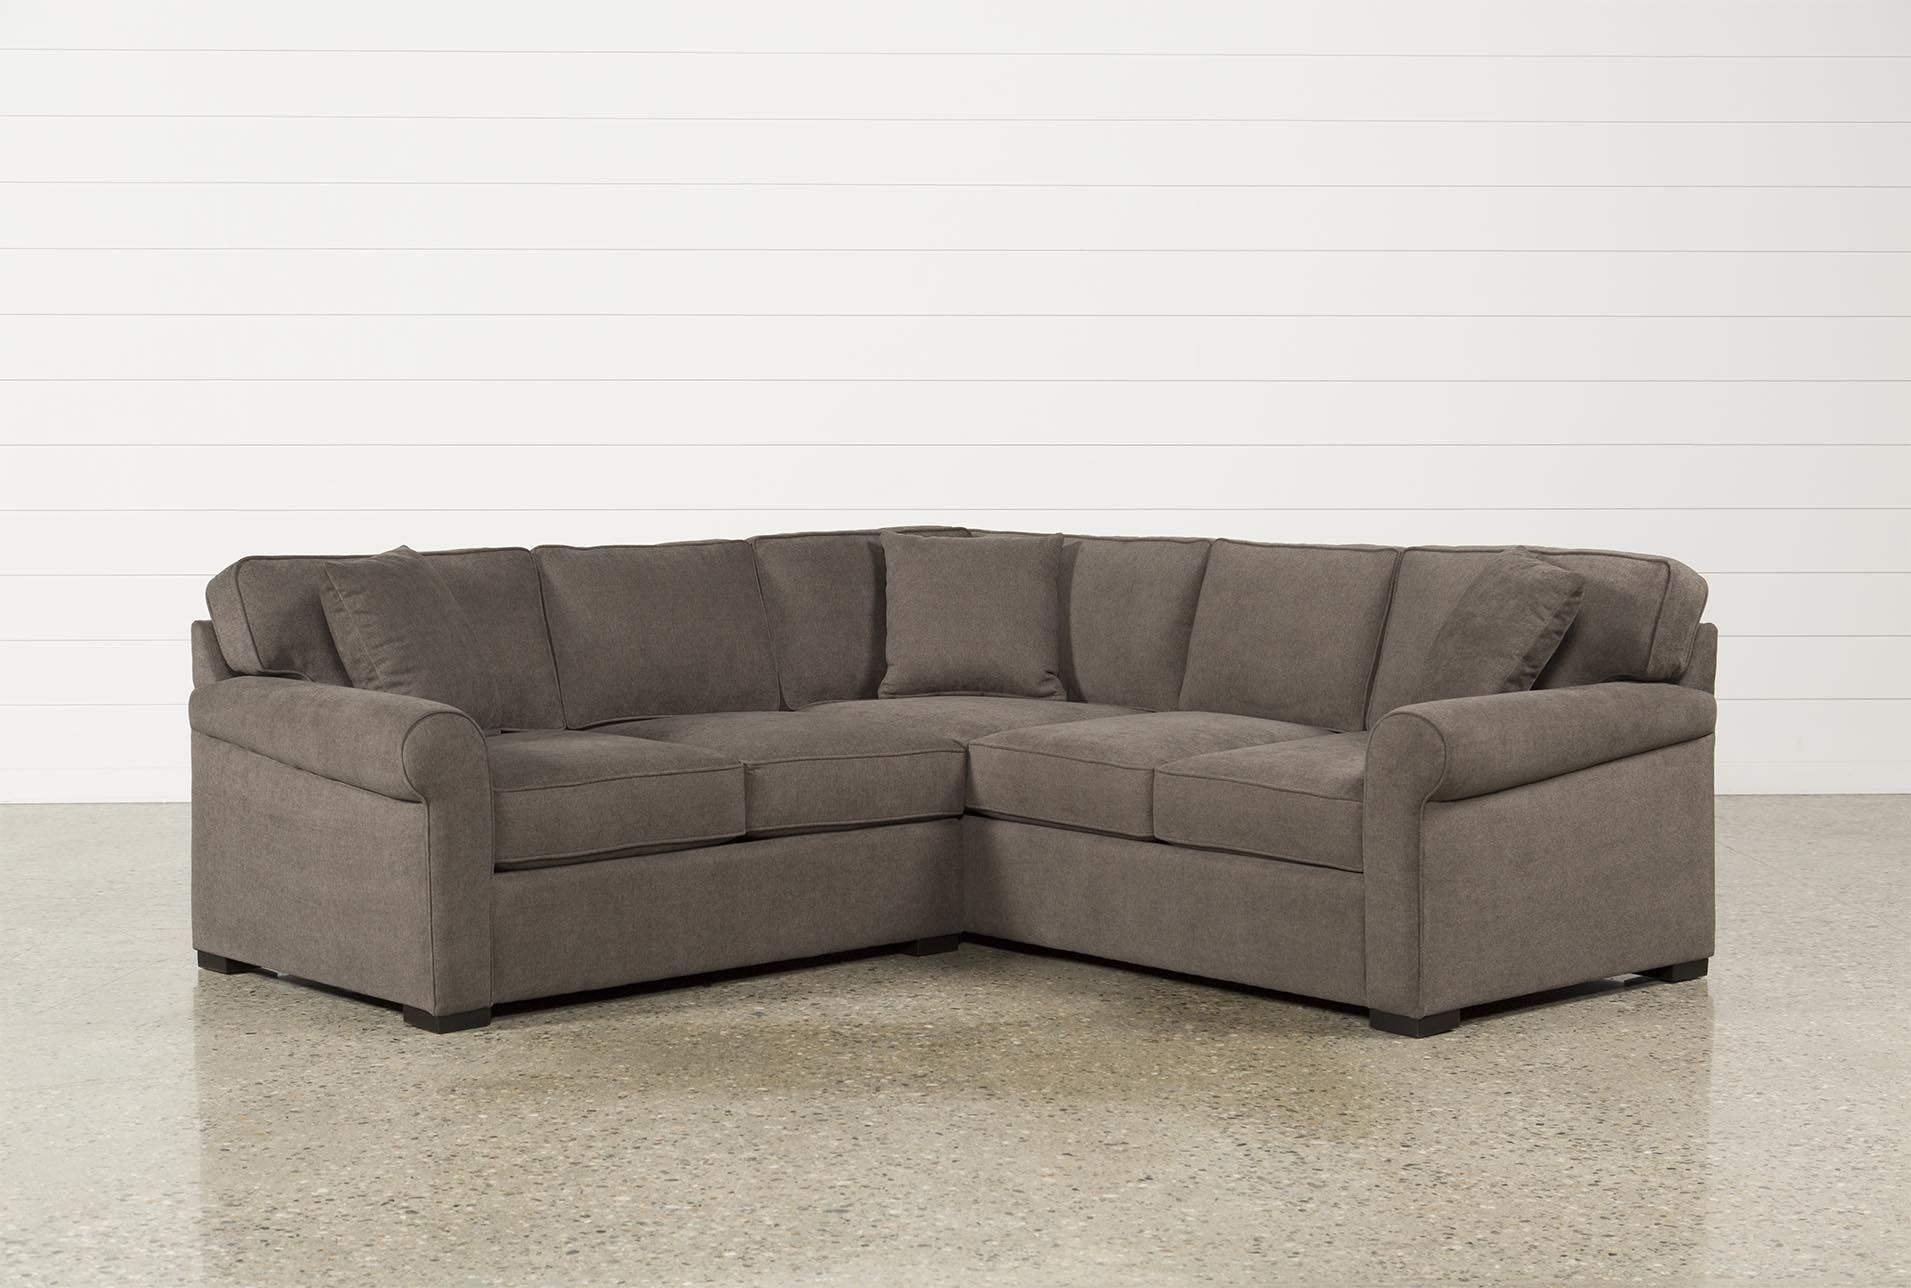 Elm Grande 2 Piece Sectional intended for Turdur 2 Piece Sectionals With Raf Loveseat (Image 8 of 30)